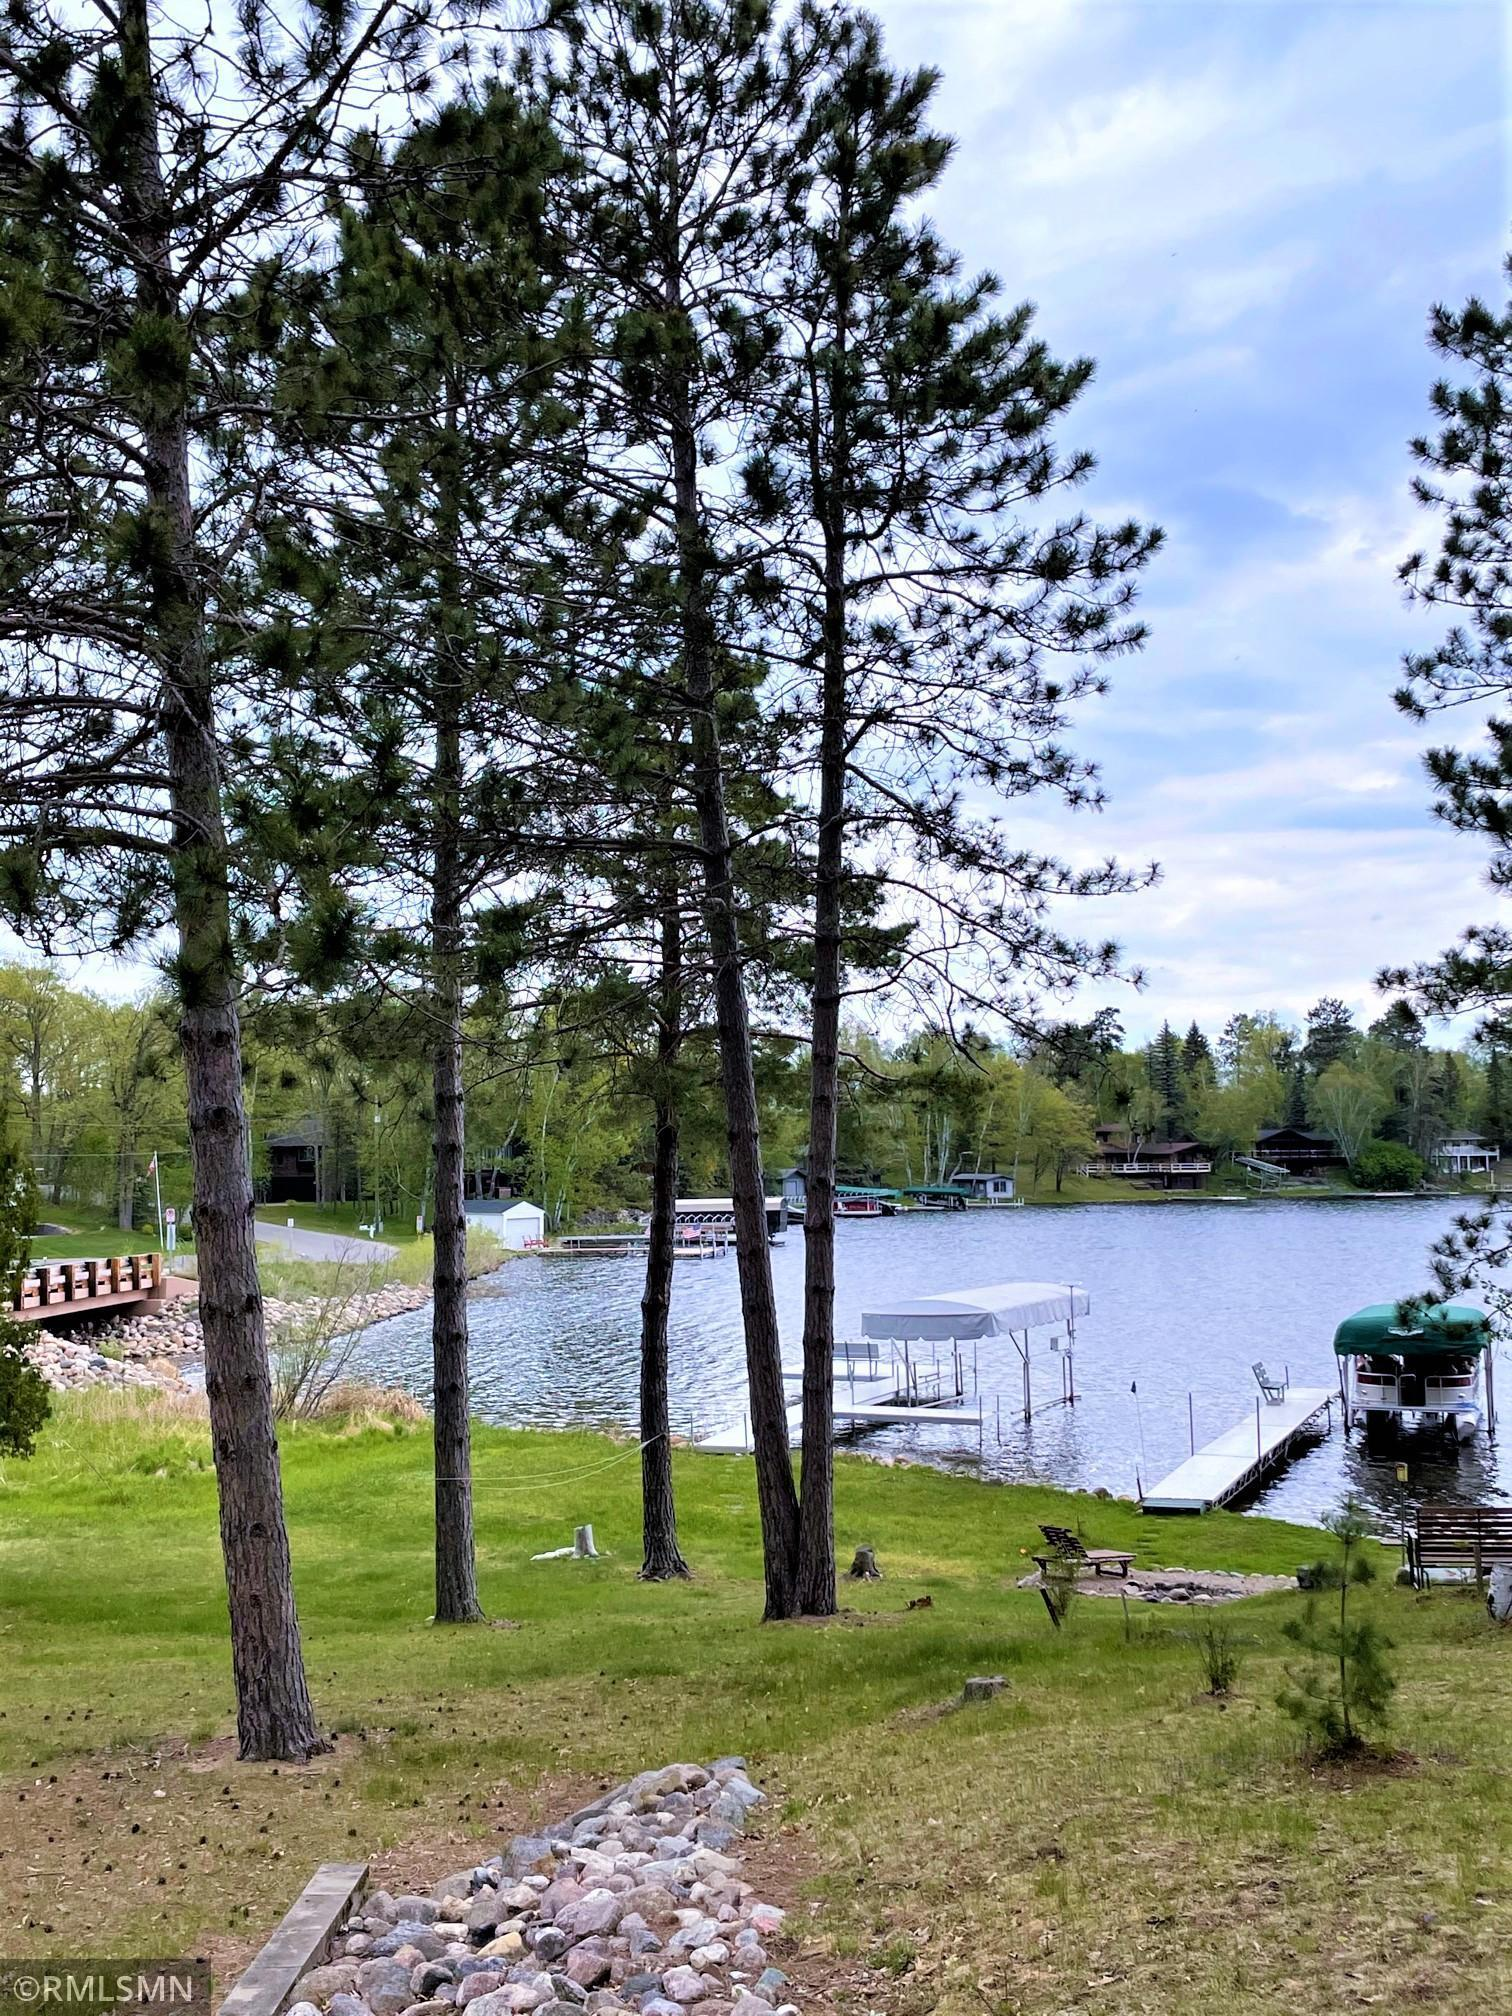 Don't miss out on this Beautifully & Quality Remodeled 3 Bedroom, 2 Bath Lake Home with Great Elevation & on the Whitefish Chain! Being sold Furnished, including Fabulous 1yr old Dock & Boat Lift! Enjoy the Panoramic Views, BBQs on the Deck, a crackling Campfire & all the Lake Fun! New 50amp RV hook-up & only 1.5 mile to Crosslake Community Center with Community Garden, Library, Tennis Courts & More! This property would be ideal for a lake home, cabin, or vacation rental! (refer to Crow Wing County for vacation rental permit info)